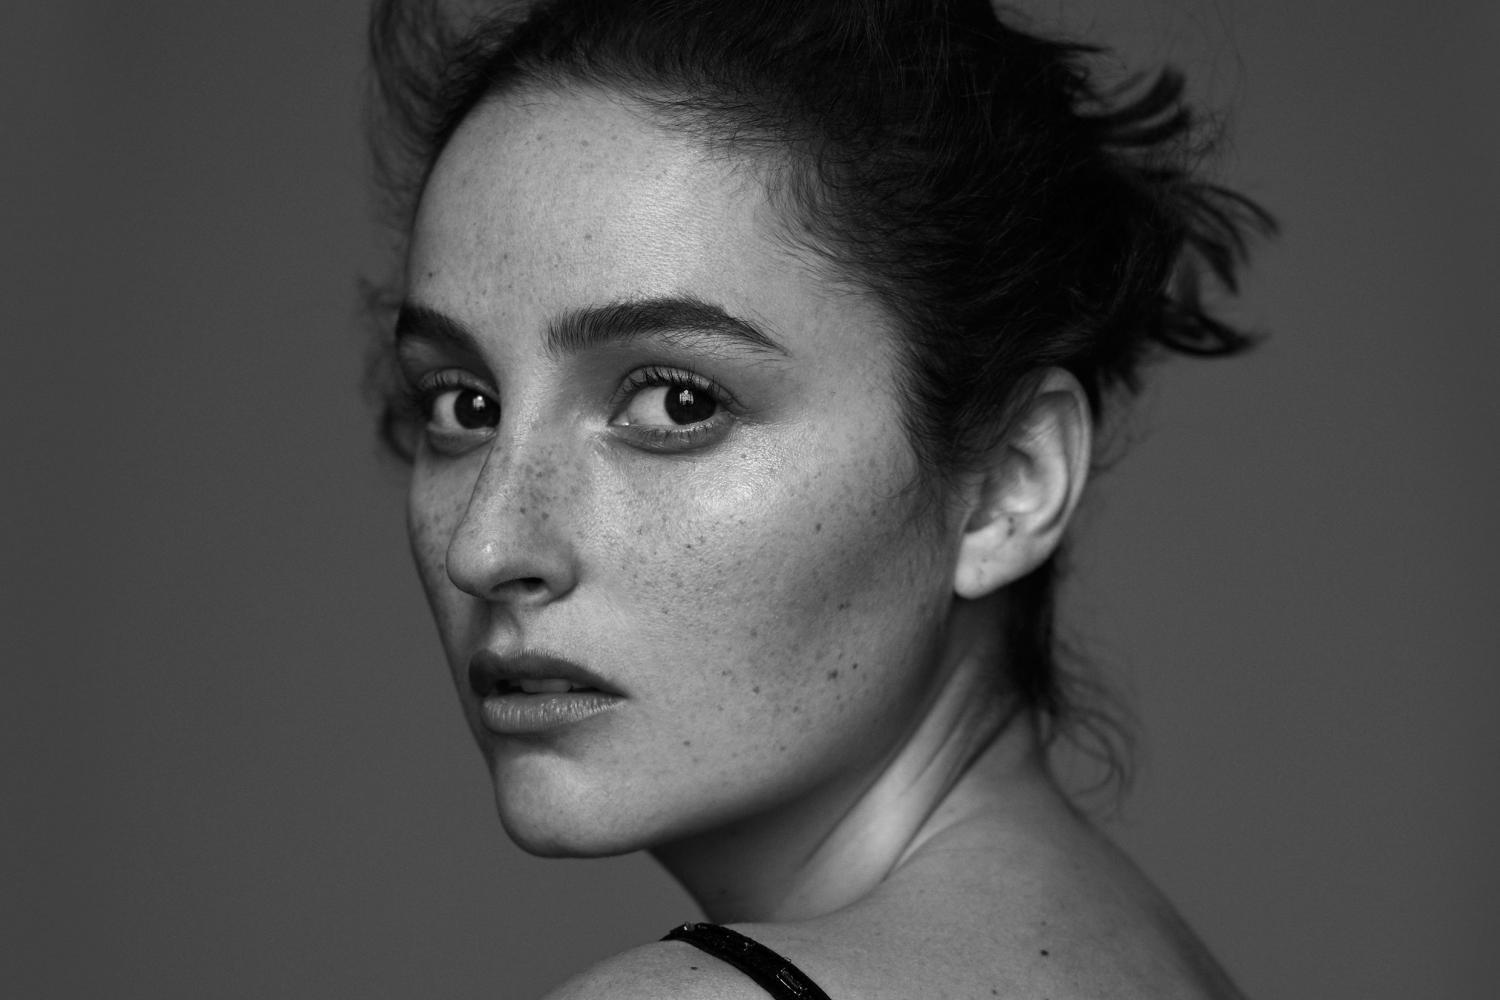 Banks shares new track 'Underdog'